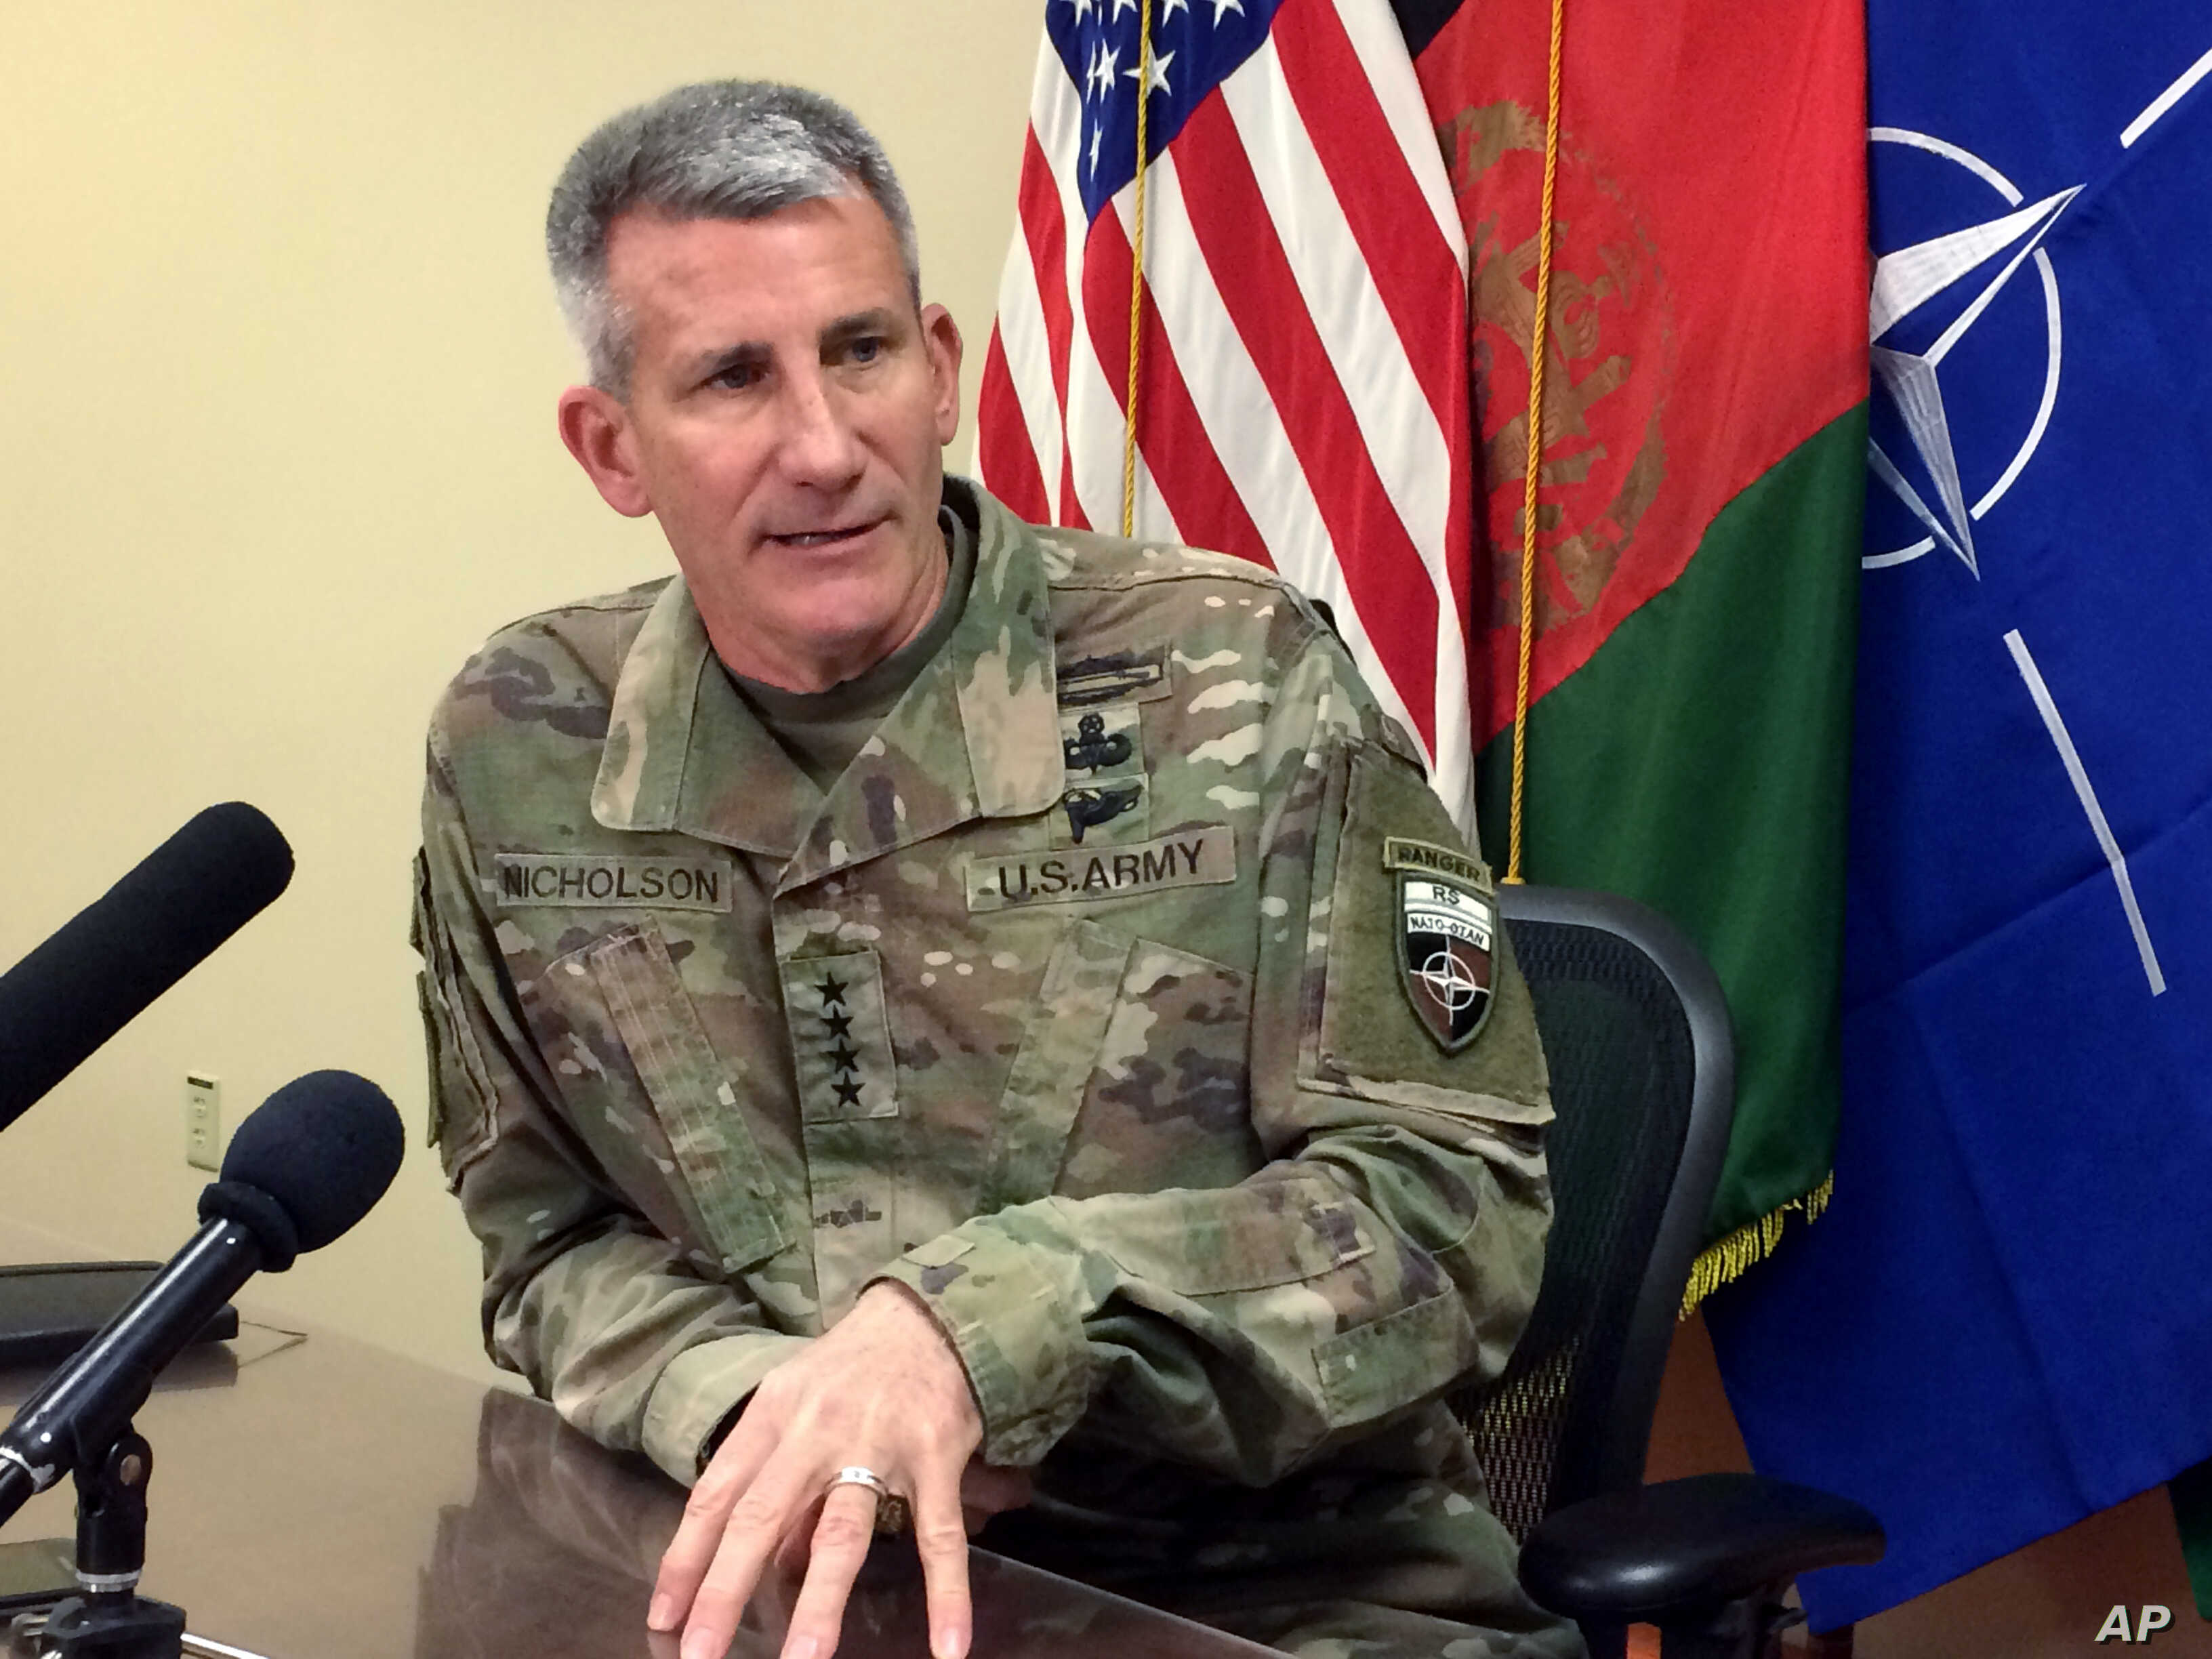 FILE - Gen. John Nicholson, the top American commander in Afghanistan, speaks to reporters, March 14, 2018, at Bagram air base north of Kabul, Afghanistan.